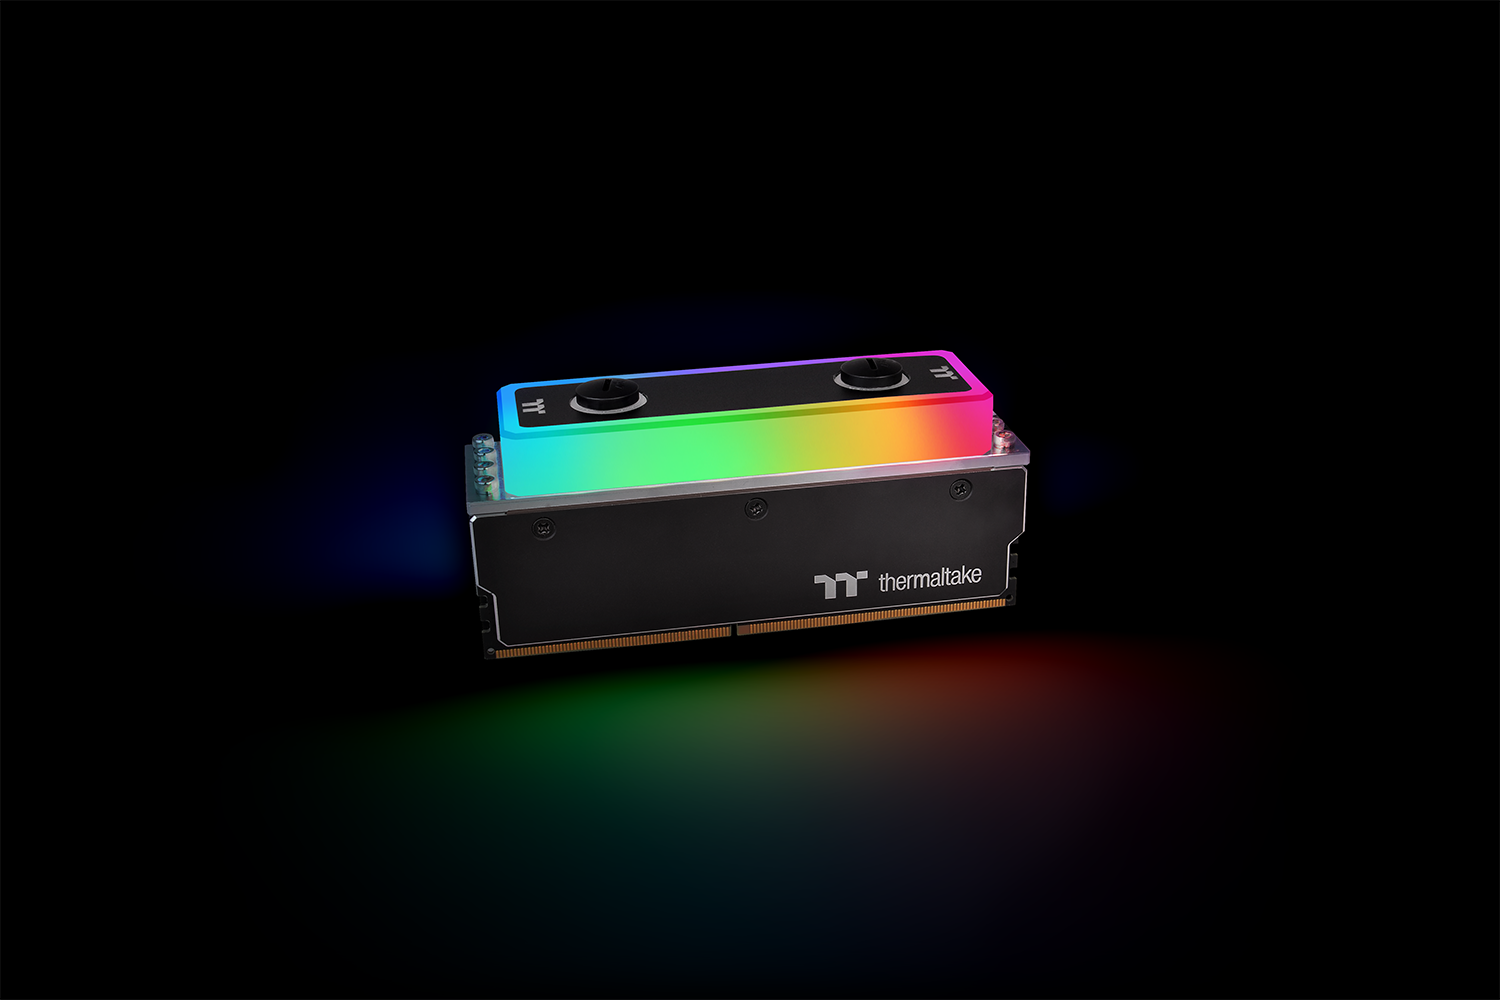 Thermaltake WaterRam RGB Liquid Cooling DDR4 Memory 5